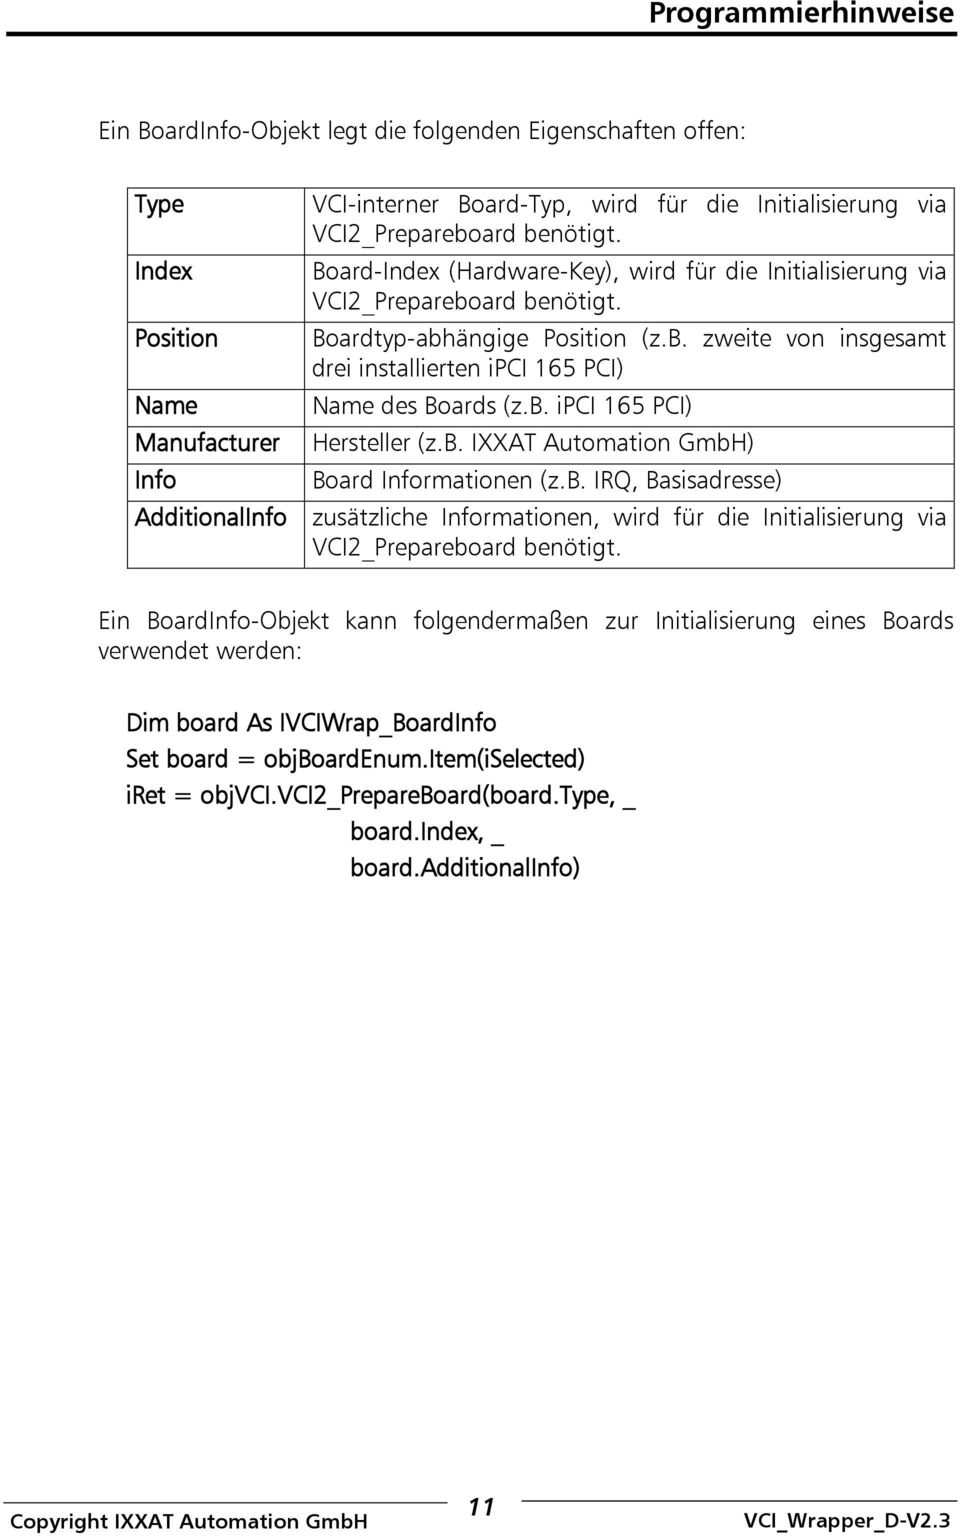 b. ipci 165 PCI) Manufacturer Hersteller (z.b. IXXAT Automation GmbH) Info Board Informationen (z.b. IRQ, Basisadresse) AdditionalInfo zusätzliche Informationen, wird für die Initialisierung via VCI2_Prepareboard benötigt.